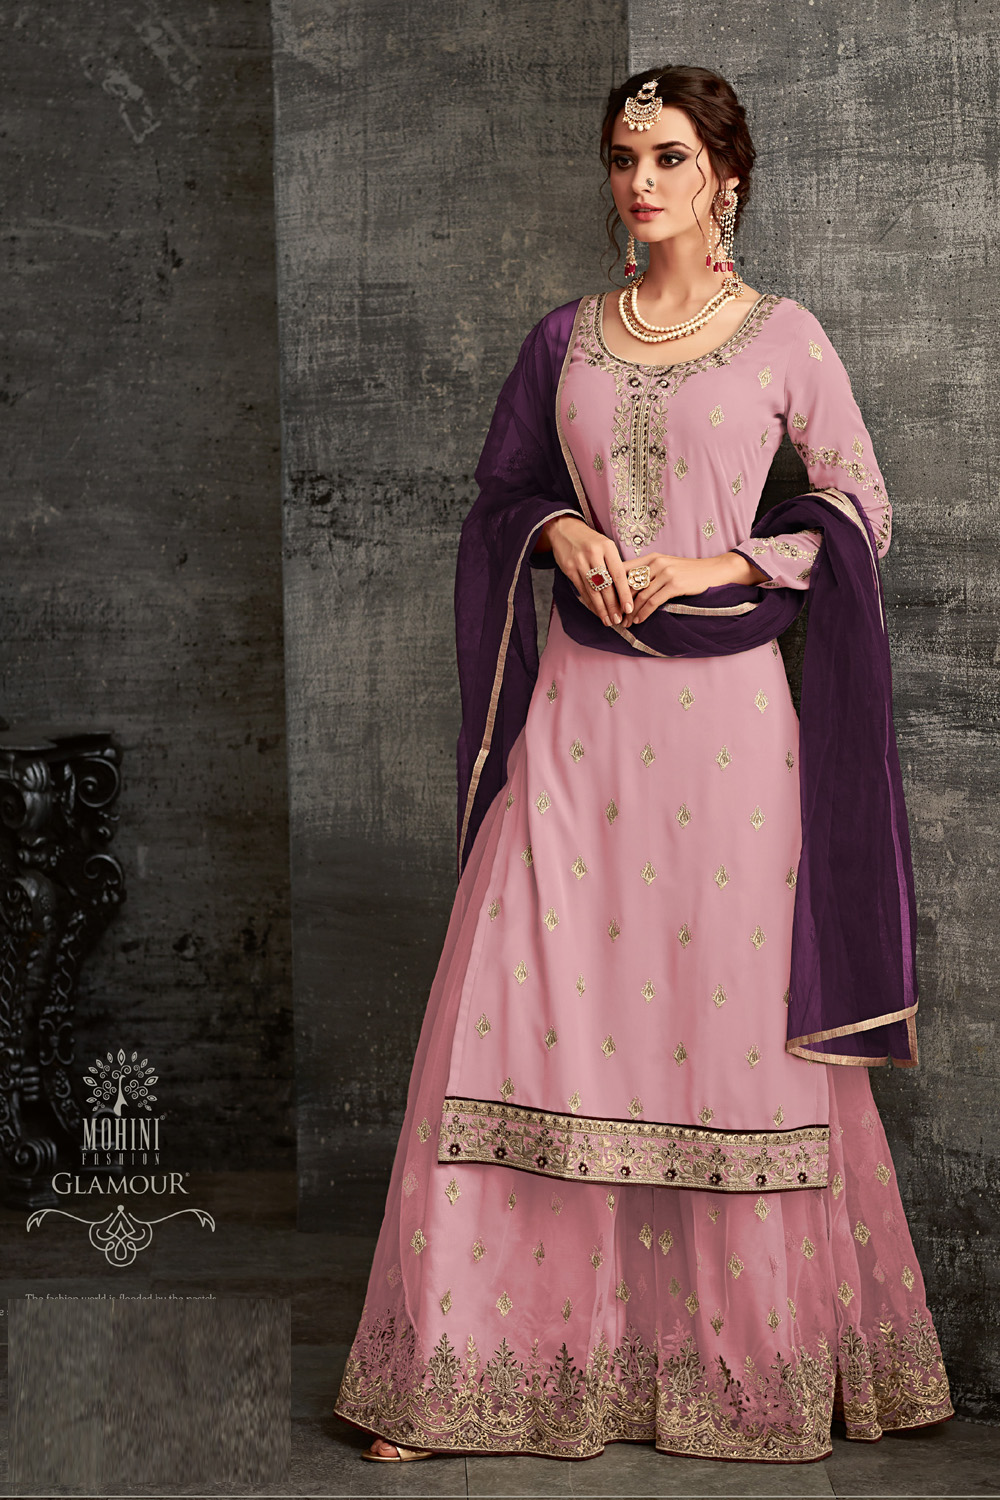 Mohini Pink Color Net Embroidery Party Wear Suit 2020